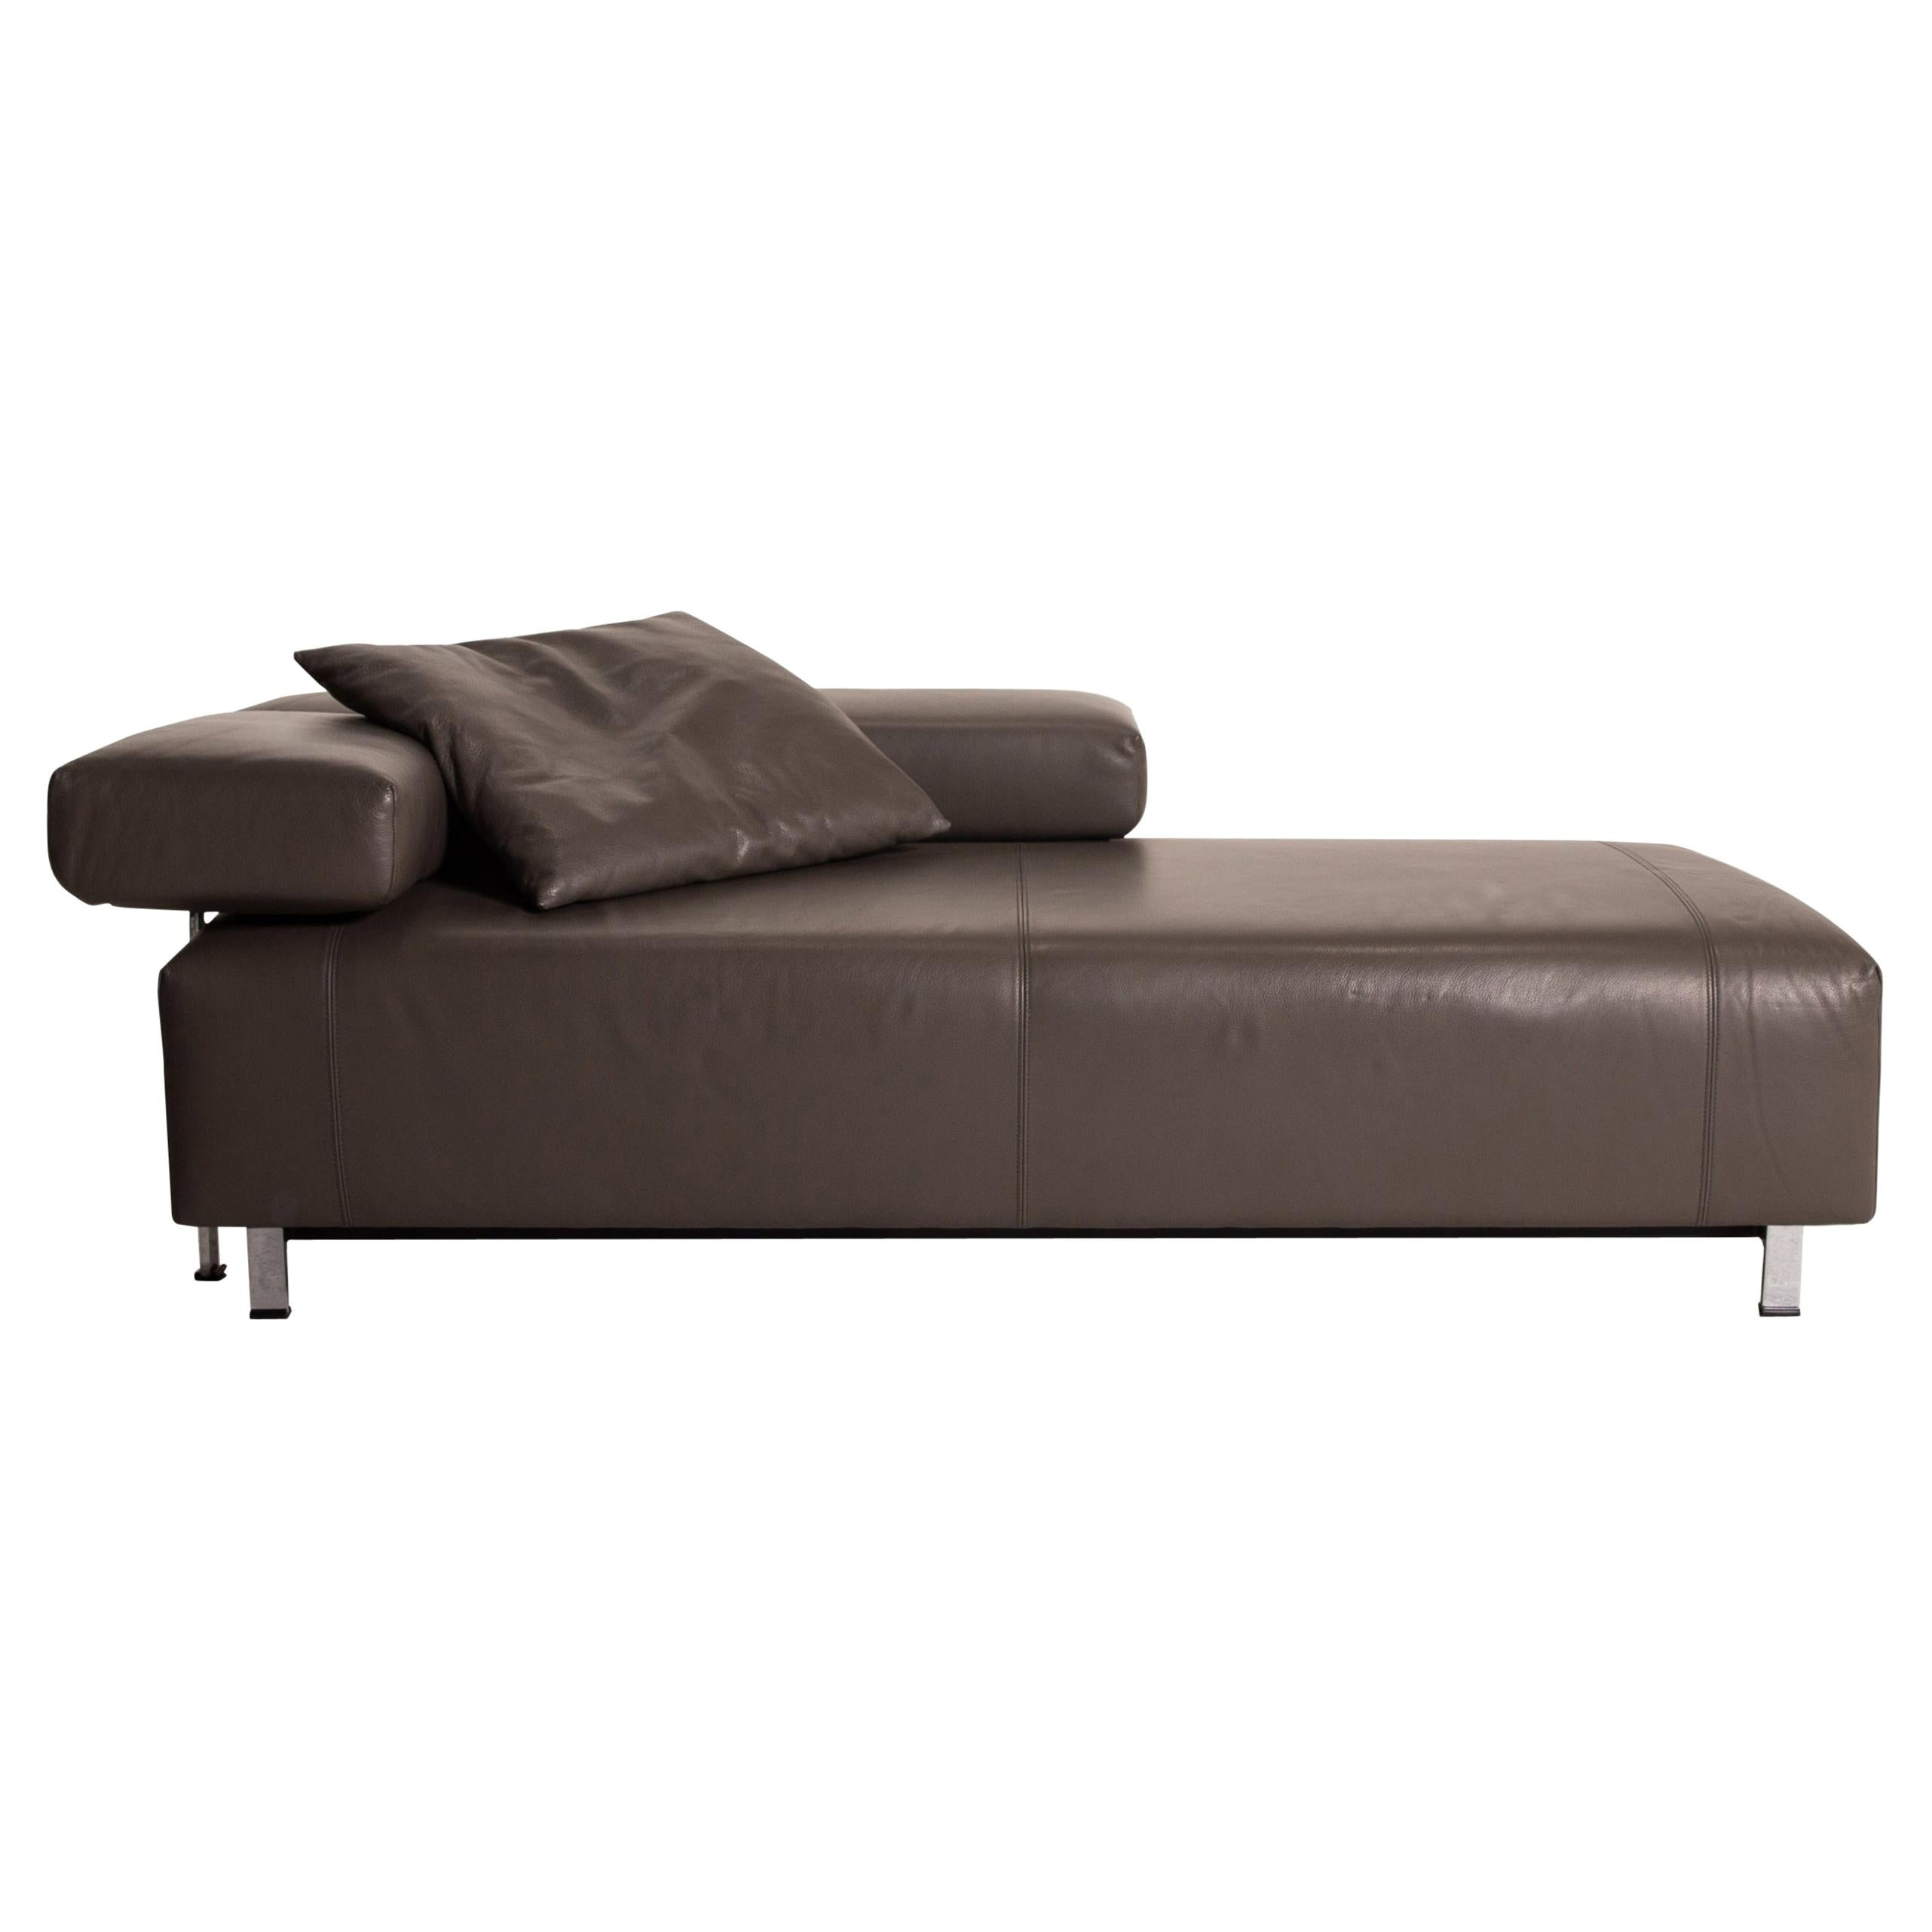 FSM Velas Leather Sofa Gray Two-Seater Function Lounger Couch